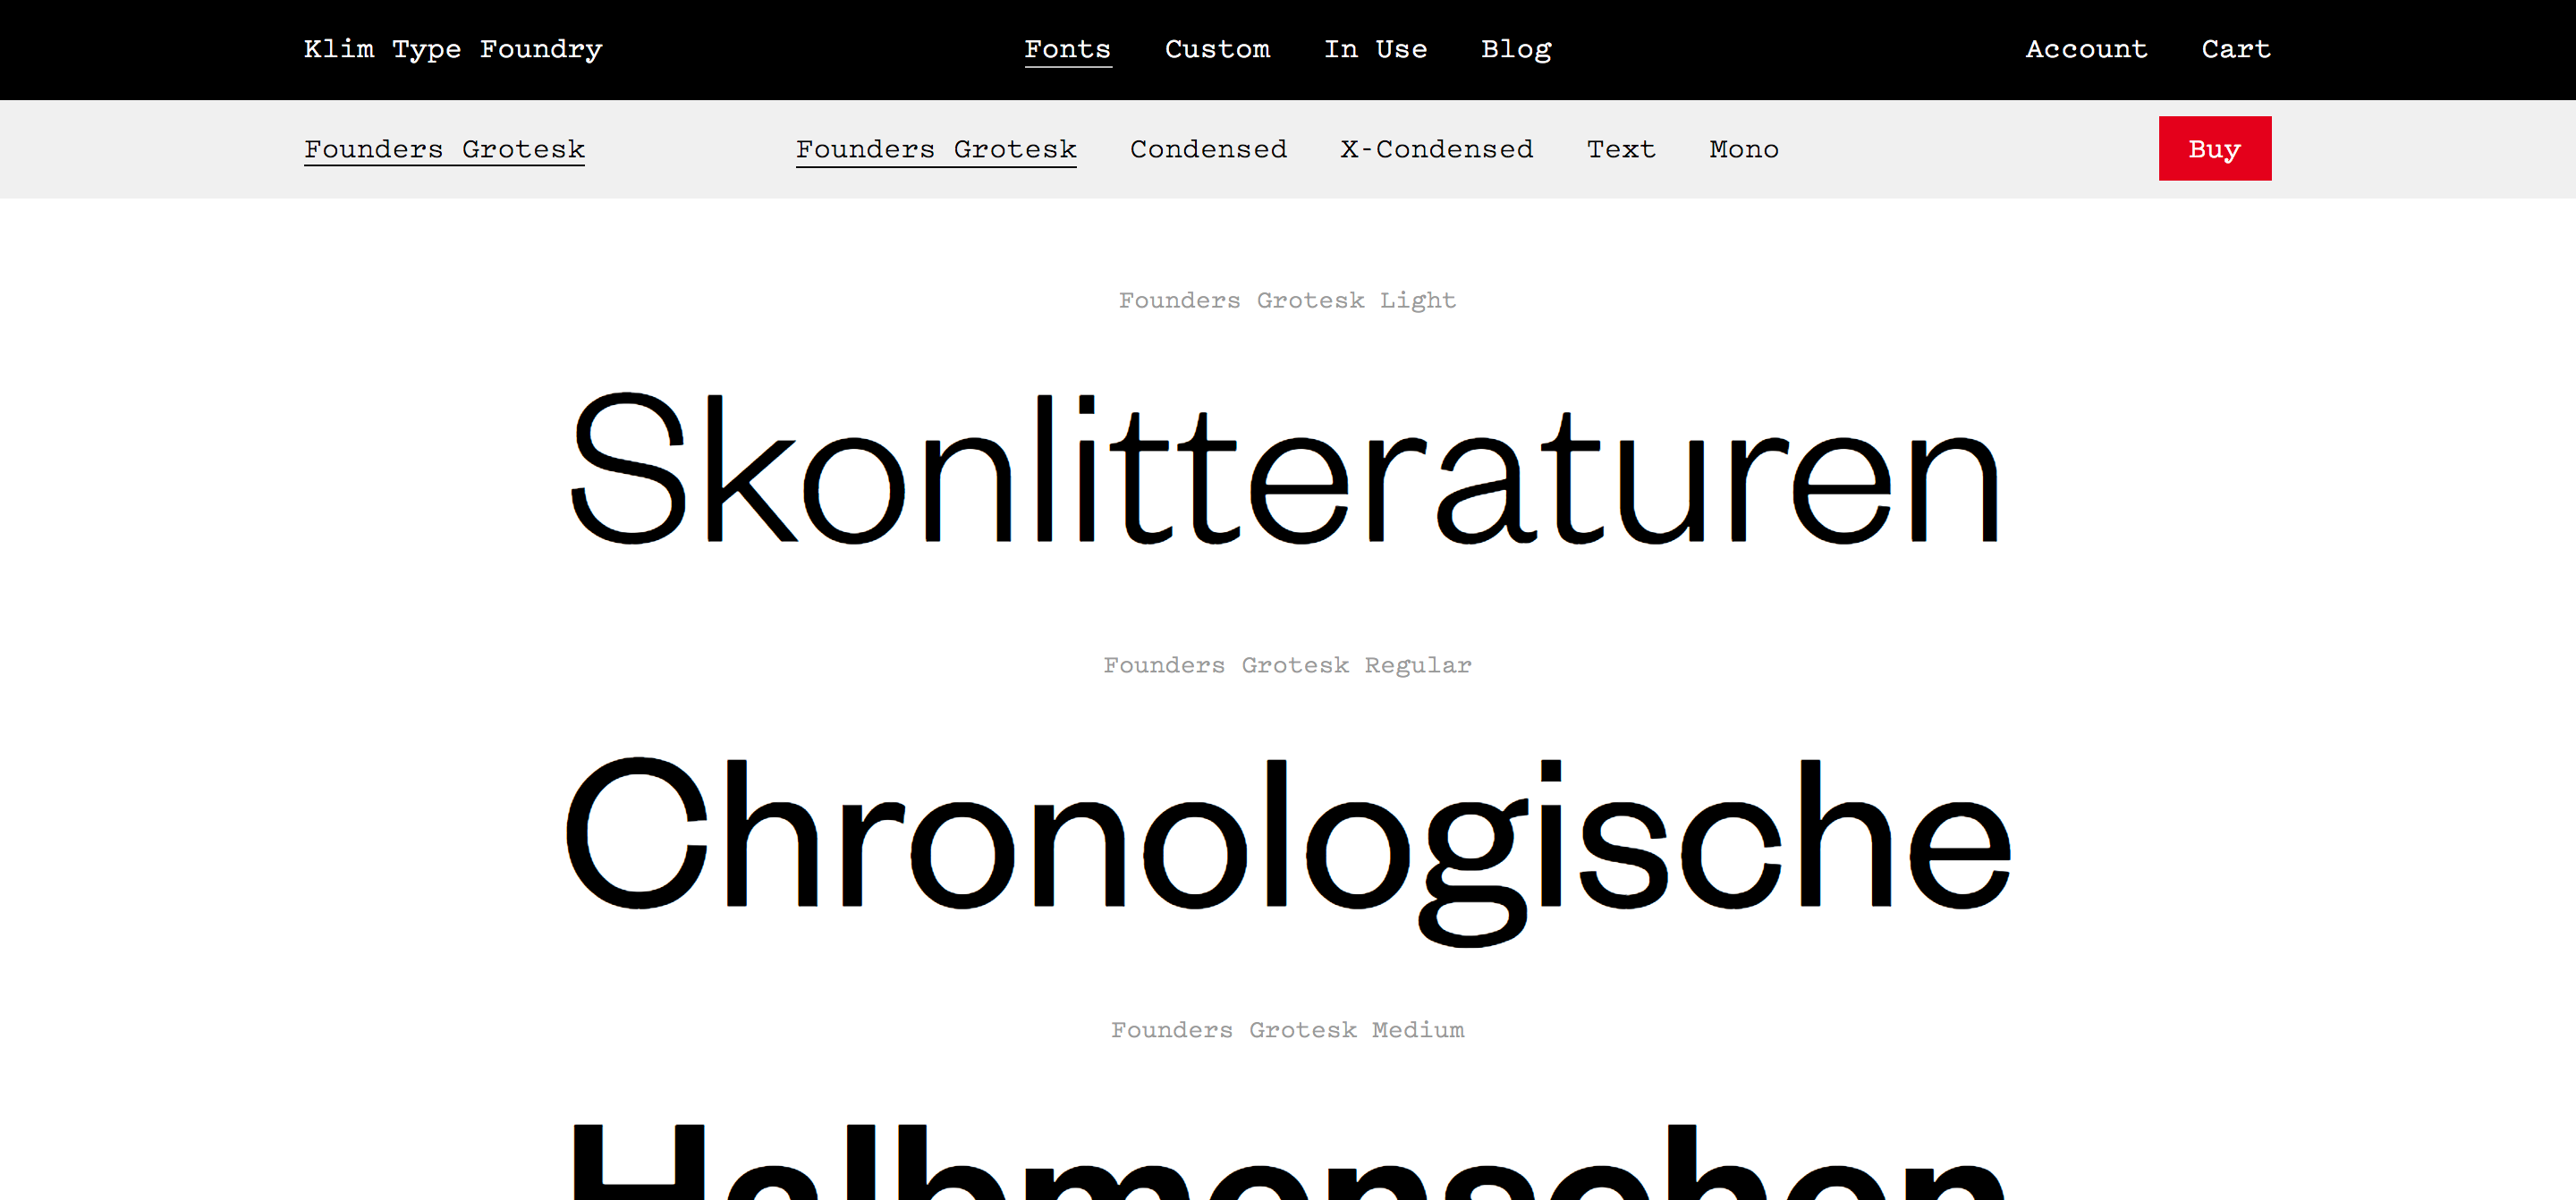 Founders Grotesk Fonts · Klim Type Foundry | Type | Fonts, Type, Design